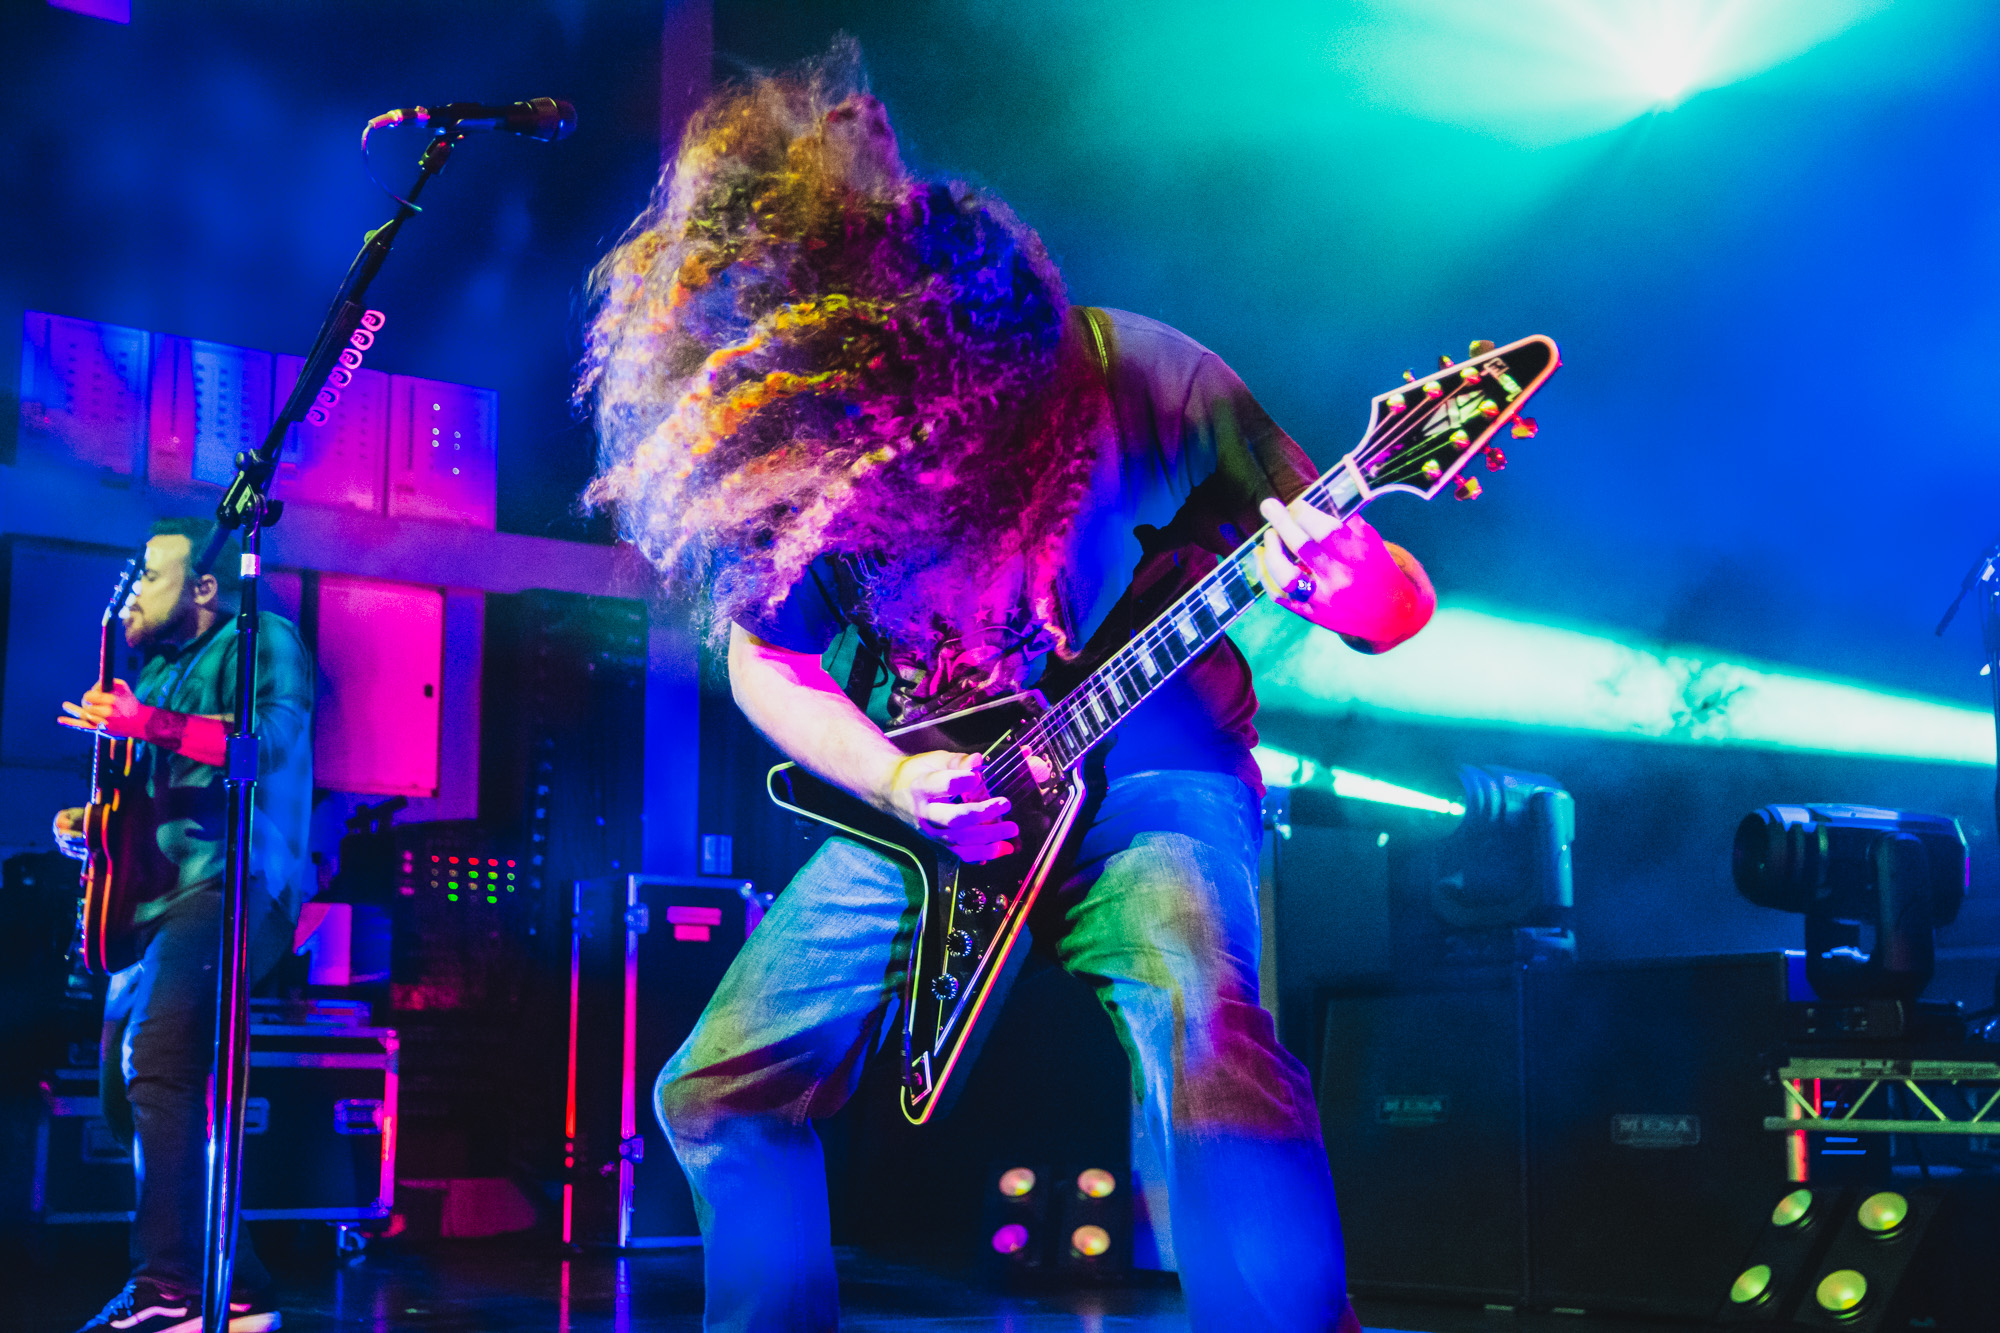 Coheed and Cambria live at O2 Academy, Birmingham